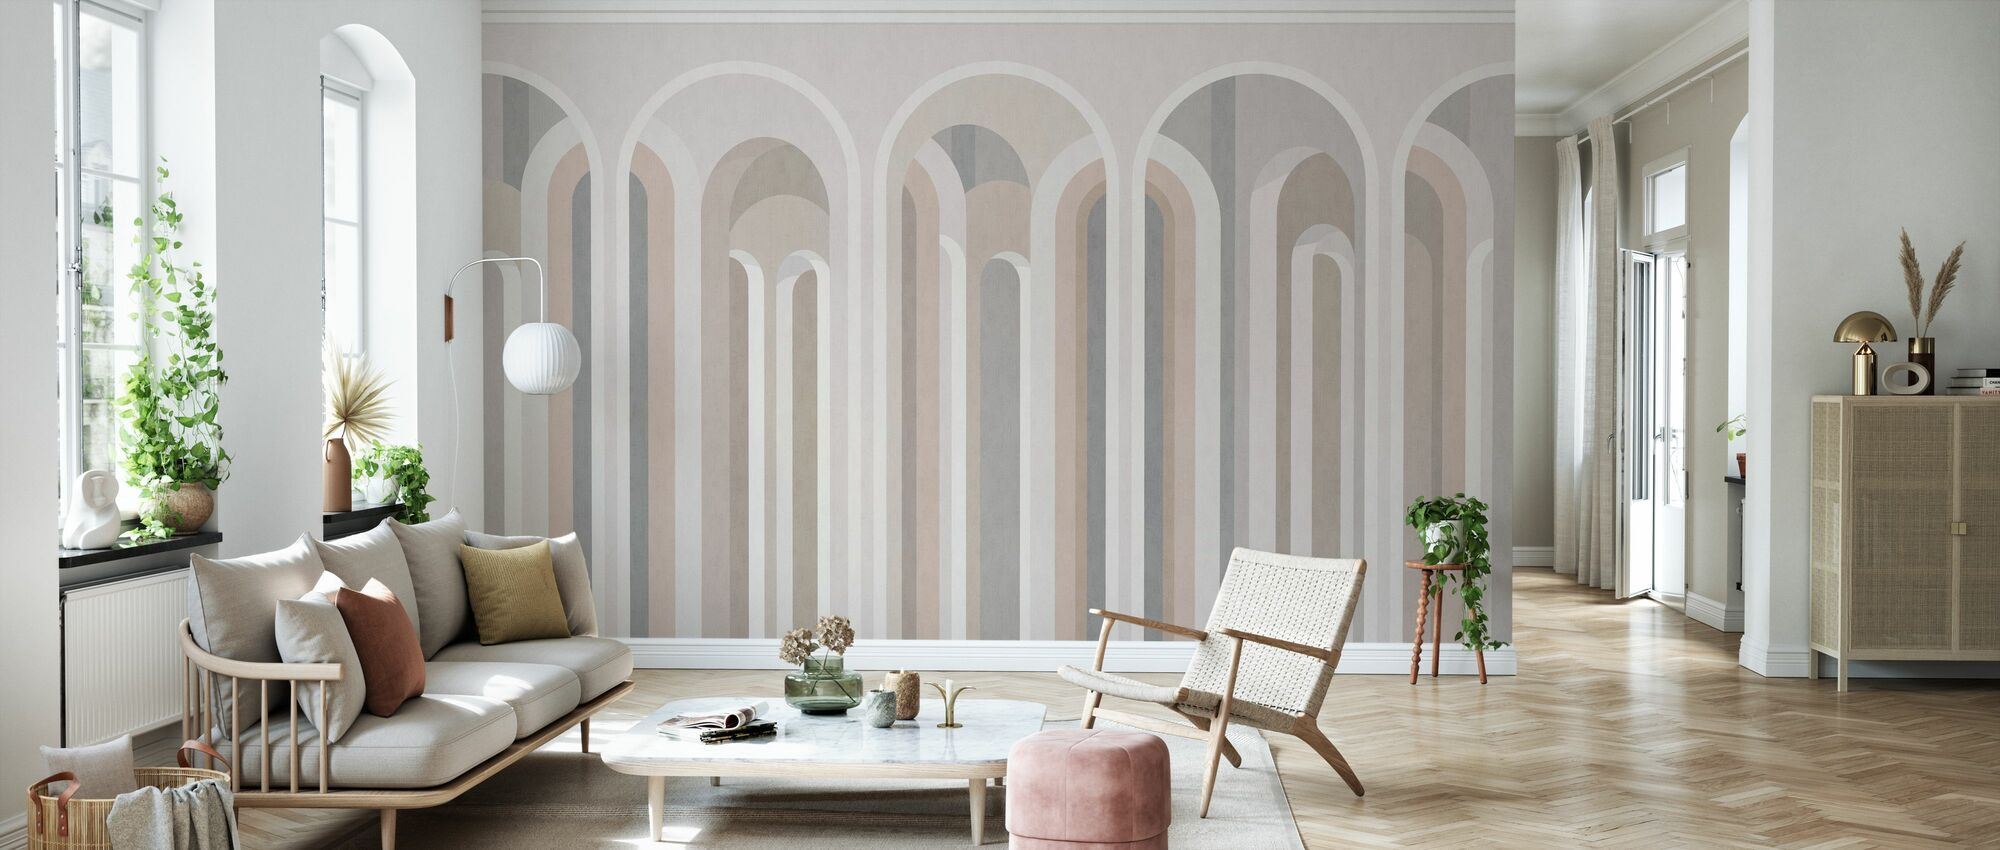 Lofty Arches - Wallpaper - Living Room